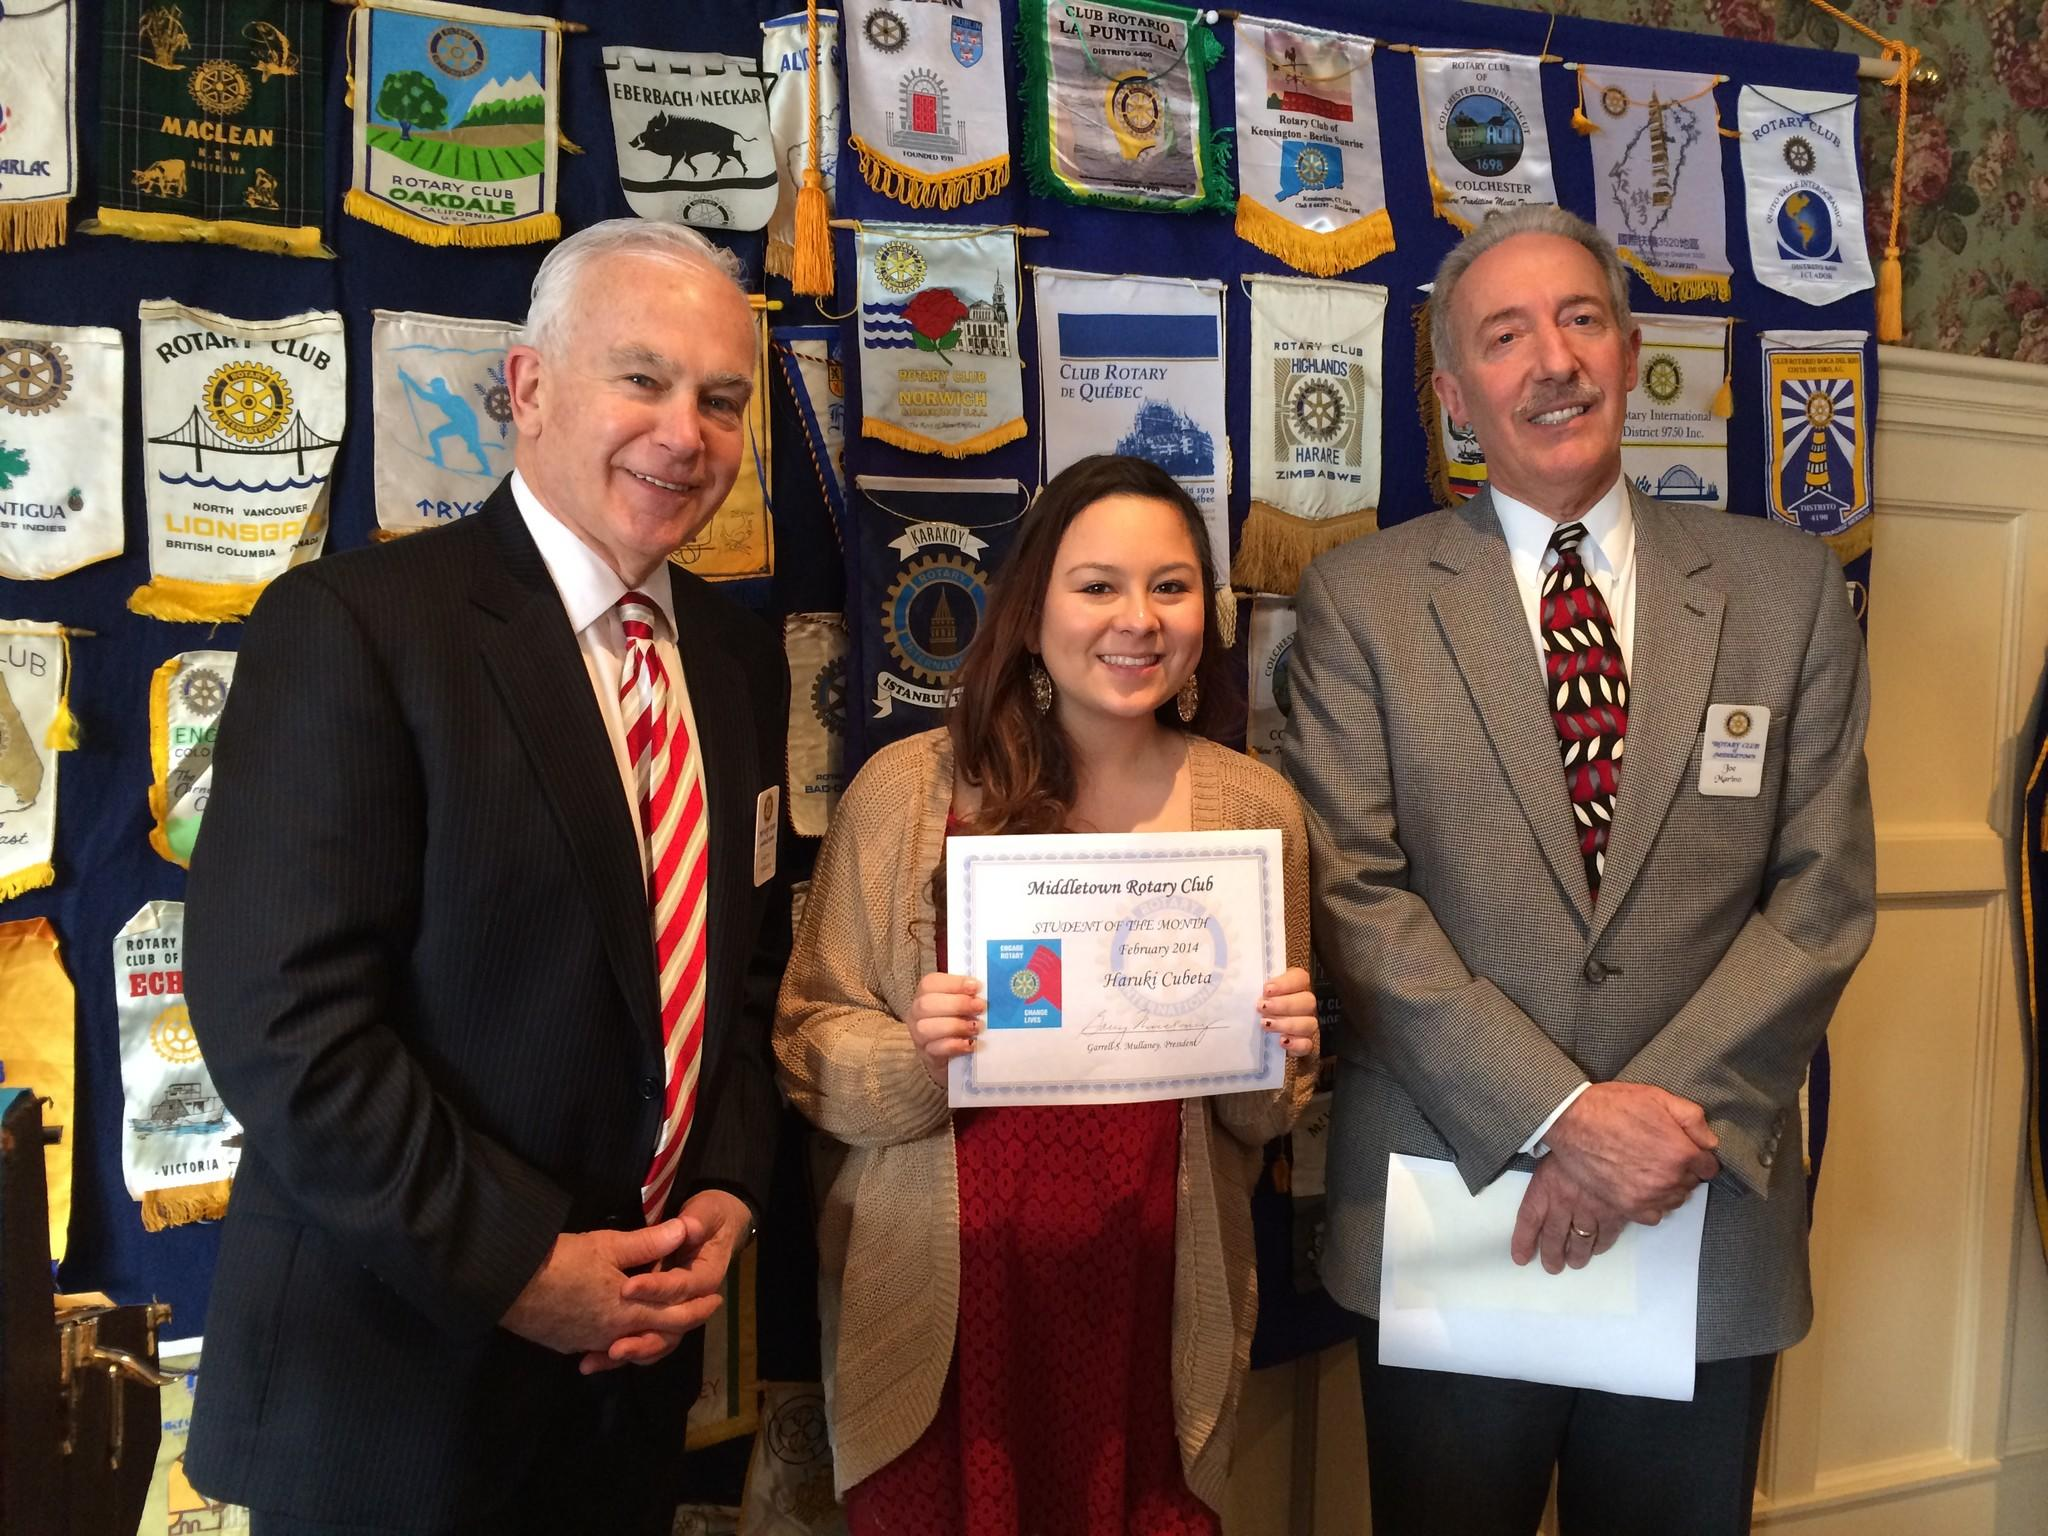 From left to right: Middletown Rotary Club President Garry Mullaney, Student of the Month Haruki Cubeta, and Middletown Rotarian Joseph Marino.